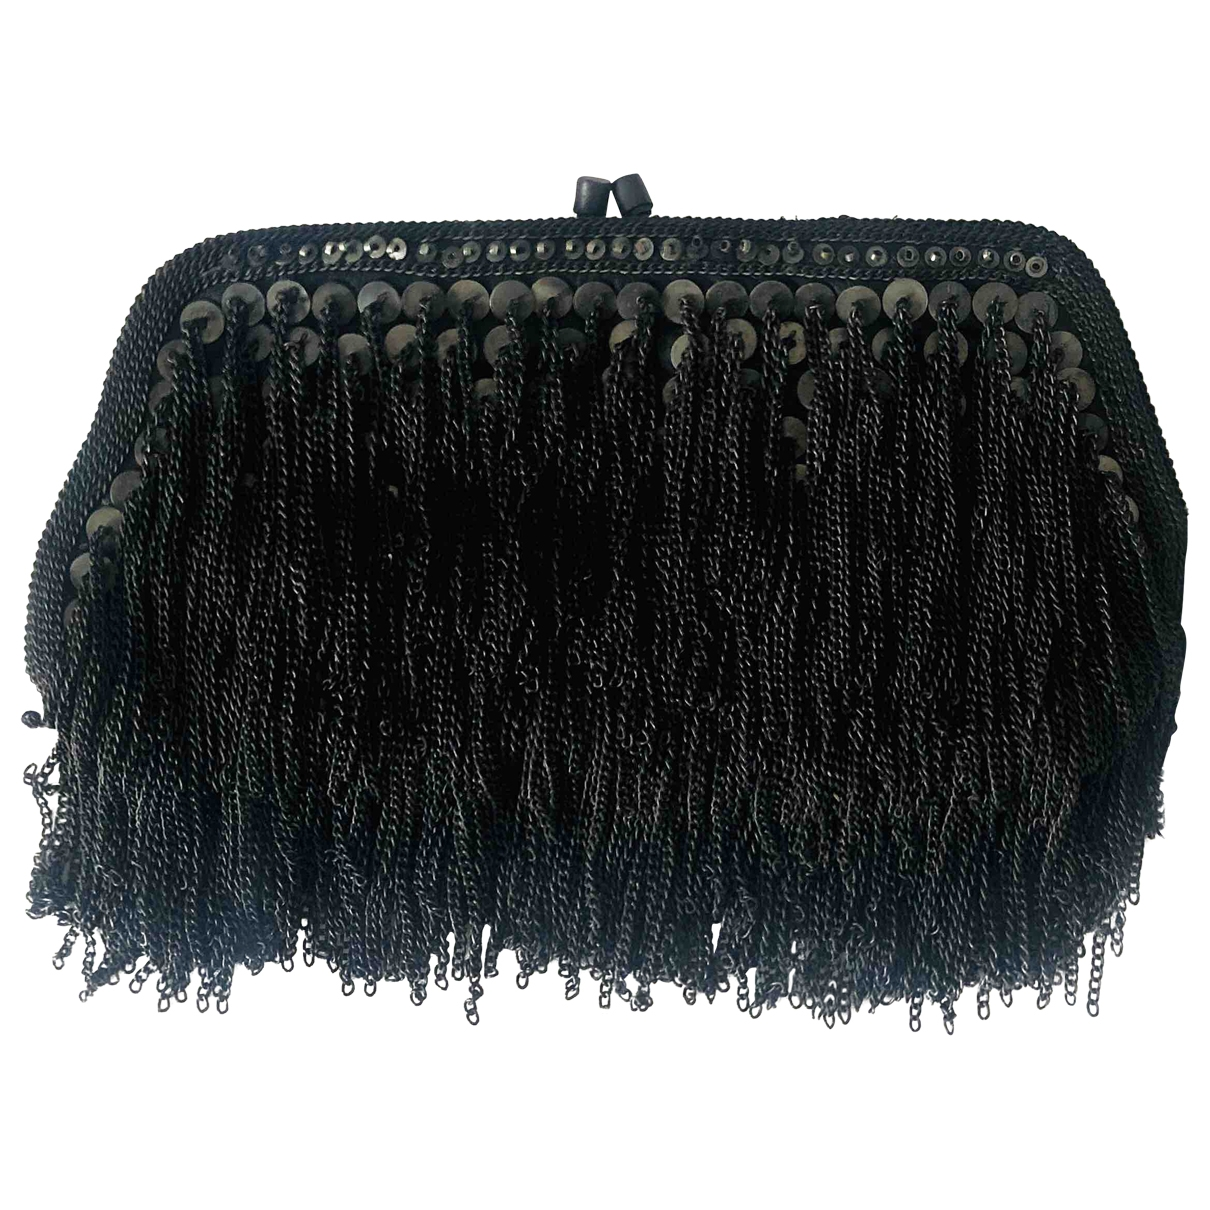 All Saints \N Anthracite Leather Clutch bag for Women \N